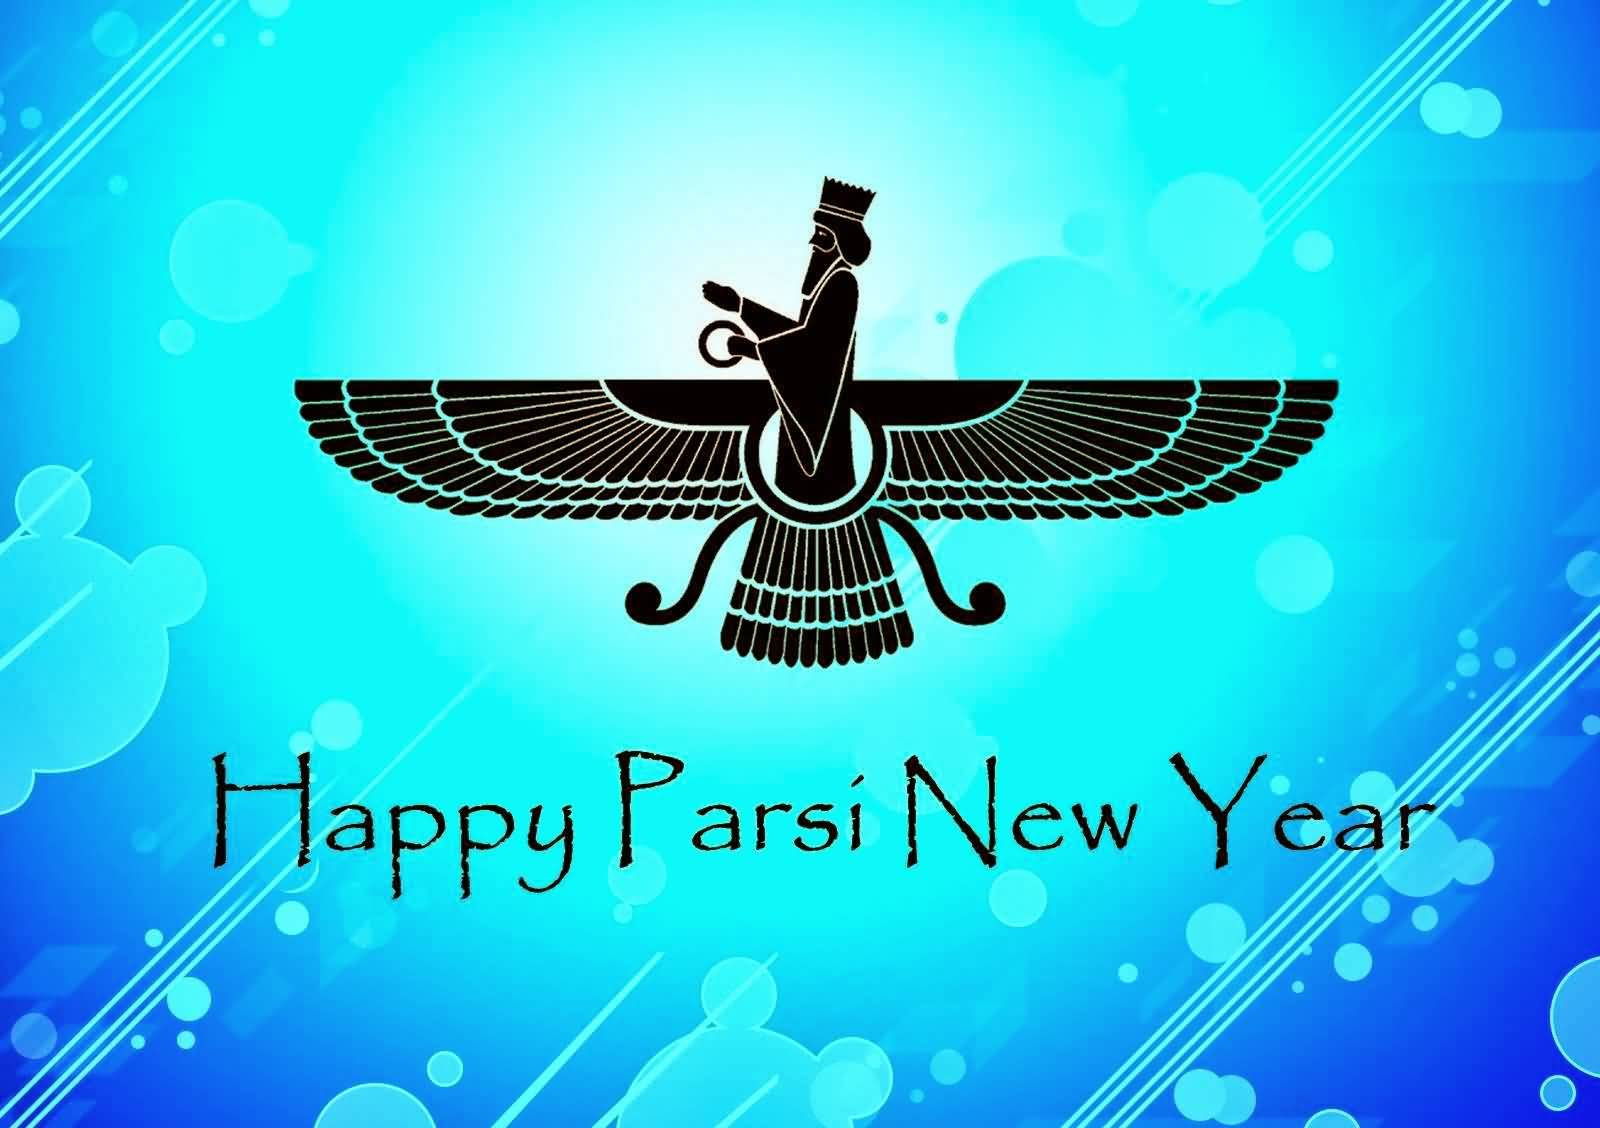 50 best happy nowruz 2017 wish pictures and images happy parsi new year 2017 greeting card kristyandbryce Gallery